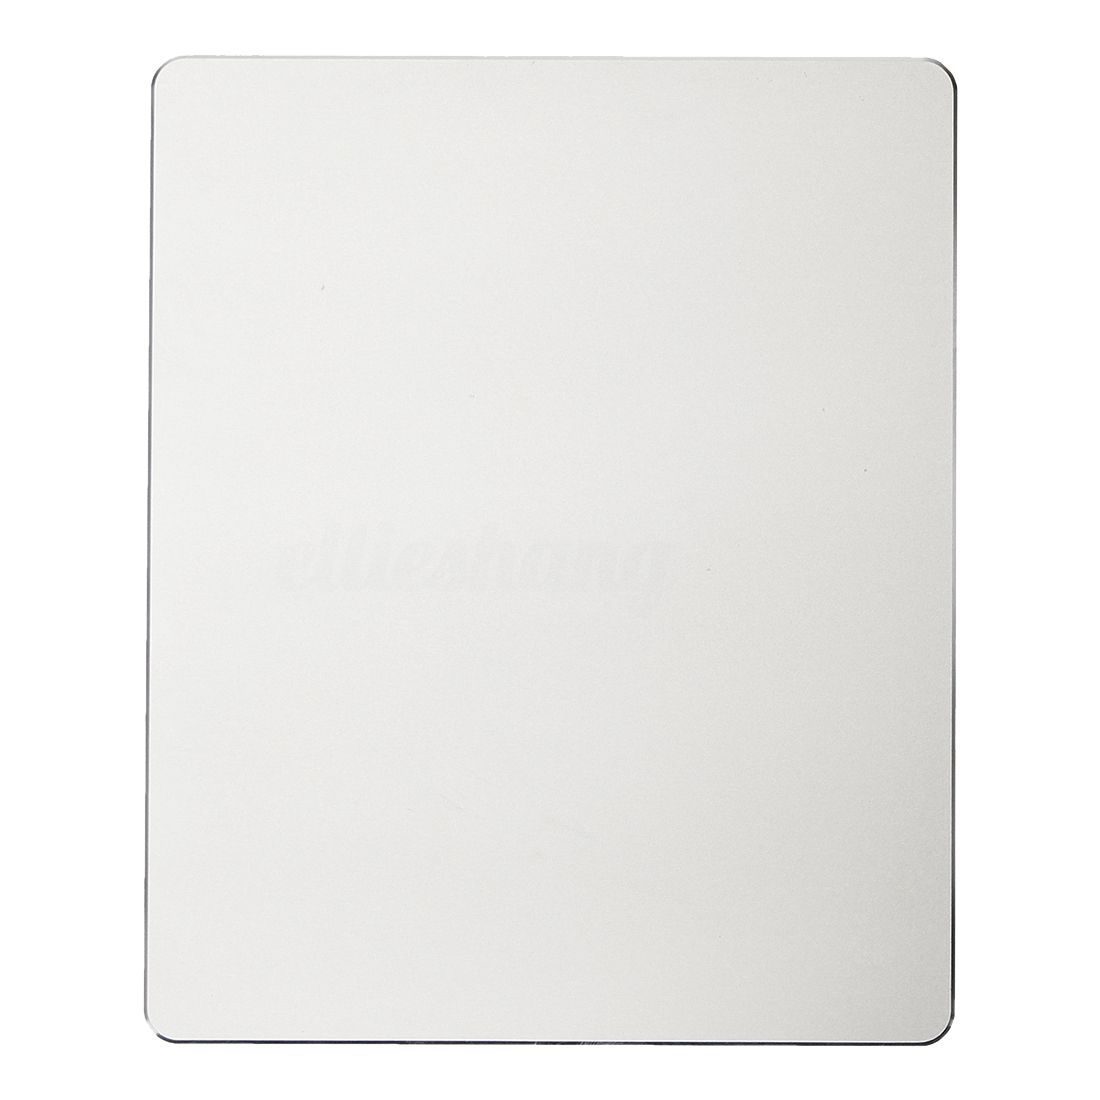 цена на Computer Desks Aluminum alloy Pad Mousepad Gaming Mat Mouse Mice for Laptop Desktop PC